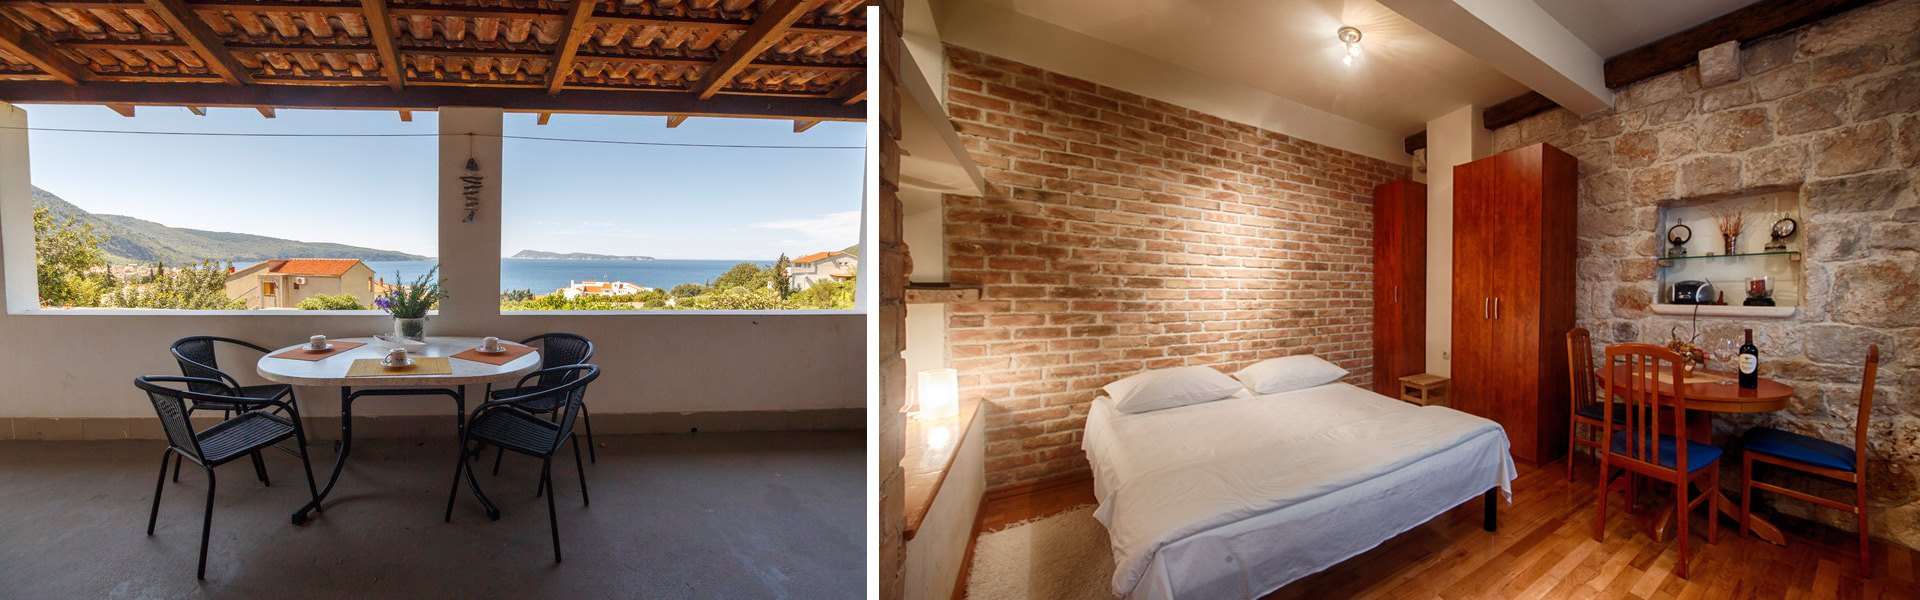 accomodation-komiza